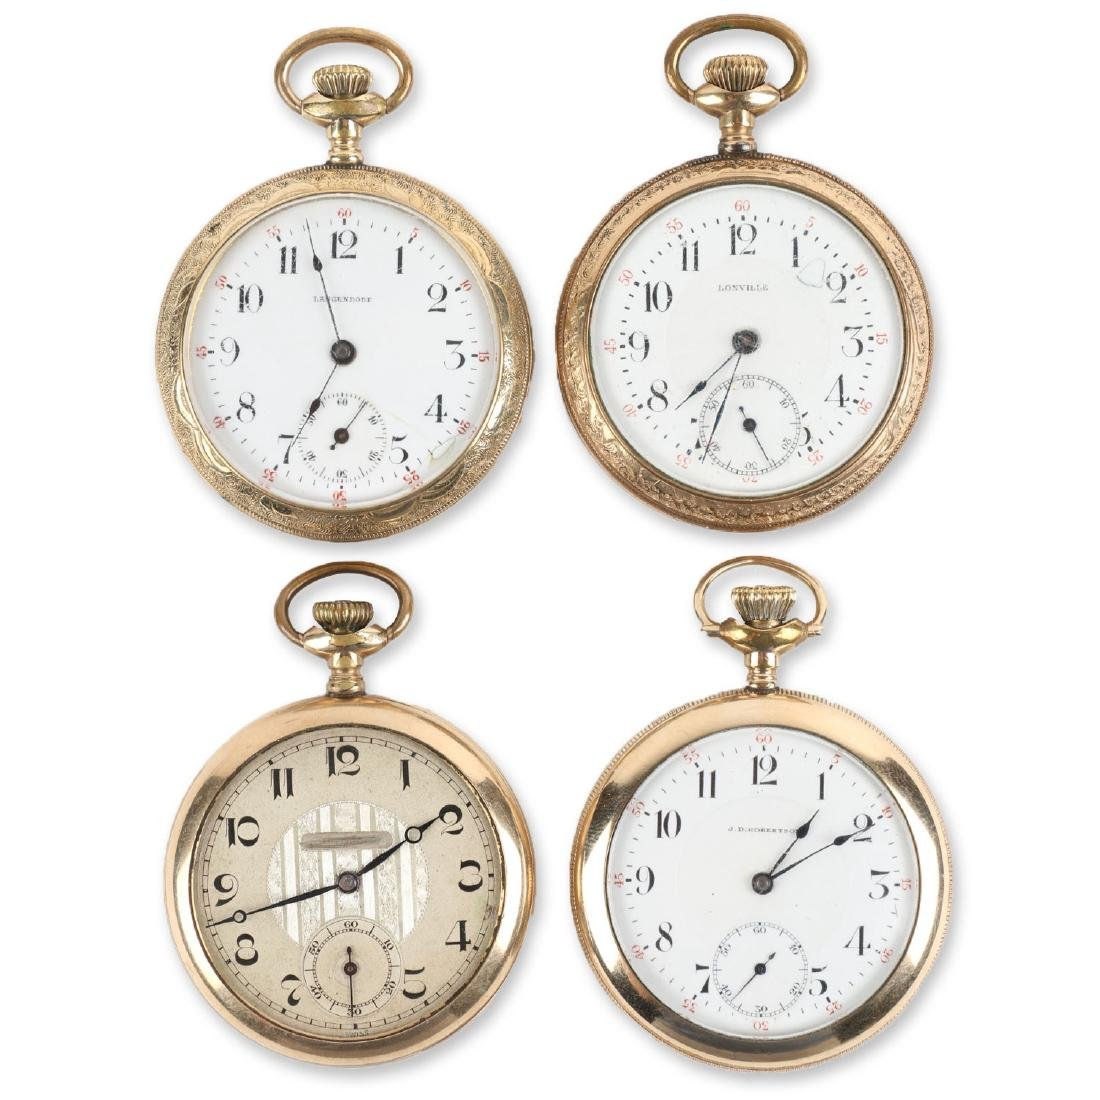 Four (4) 16S Gold Filled Swiss Pocket Watches